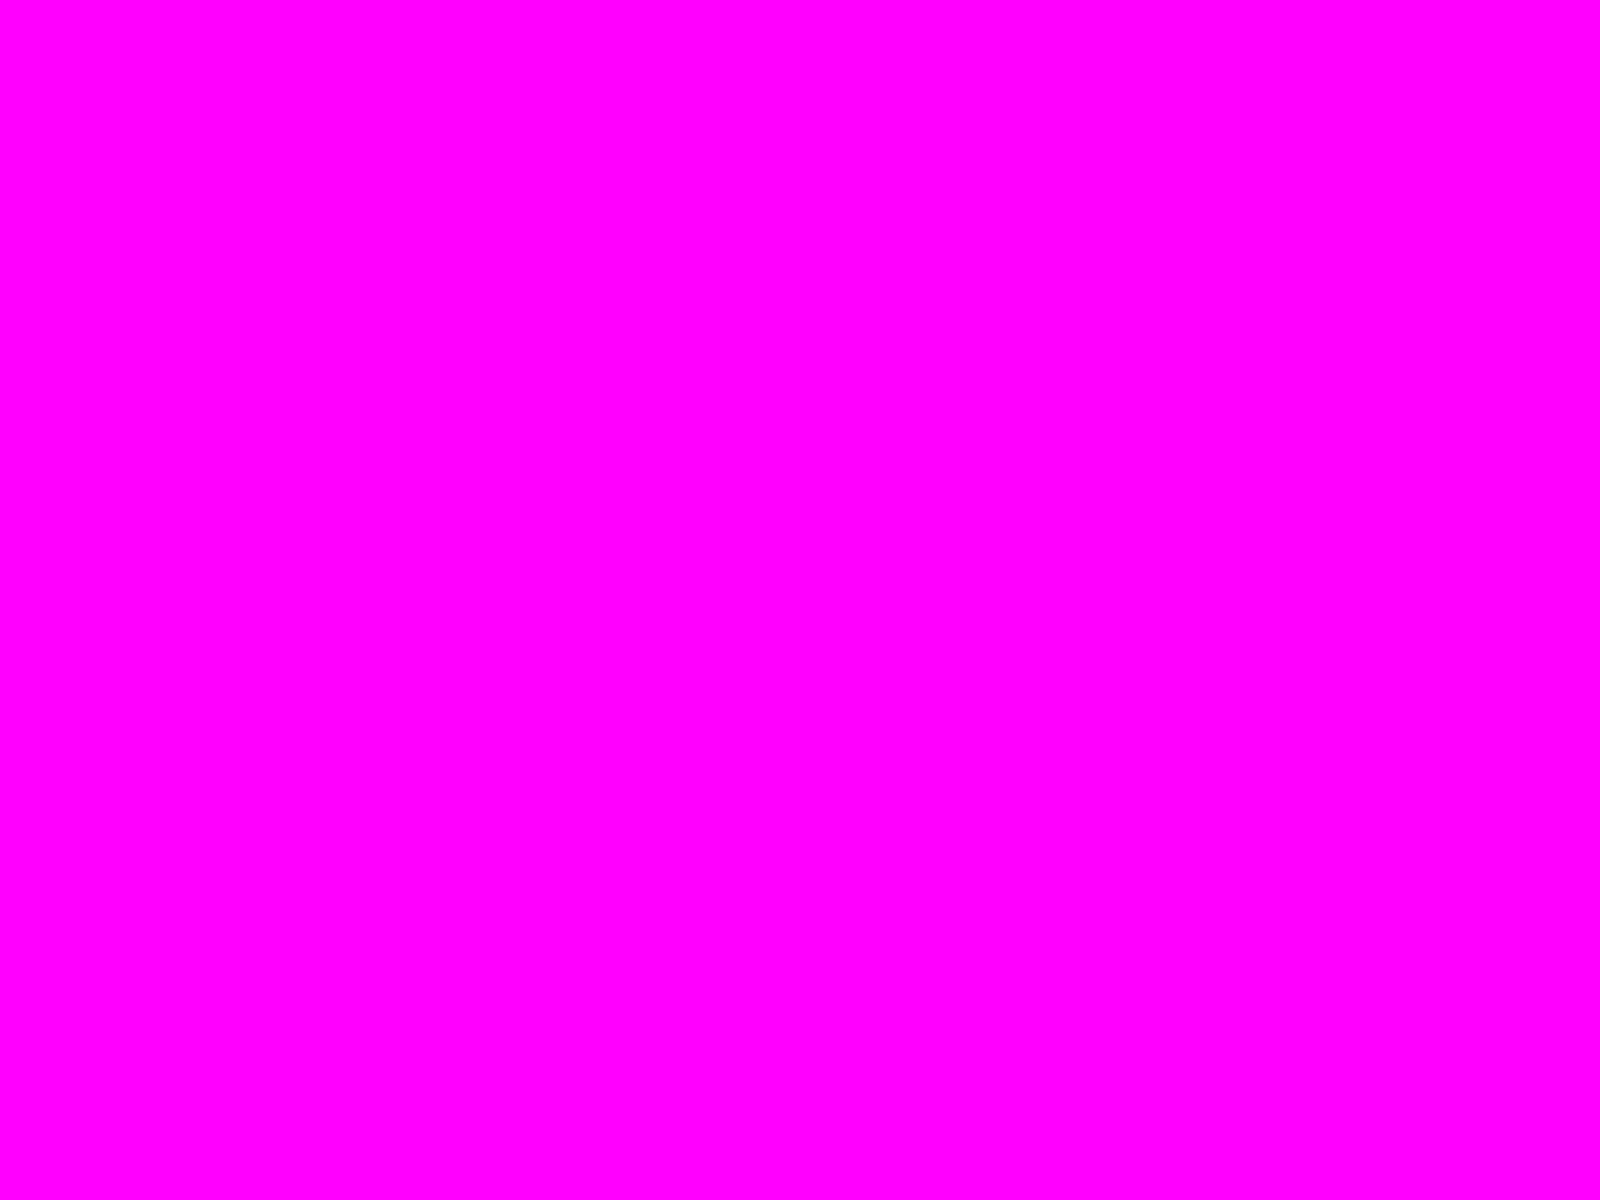 1600x1200 Fuchsia Solid Color Background